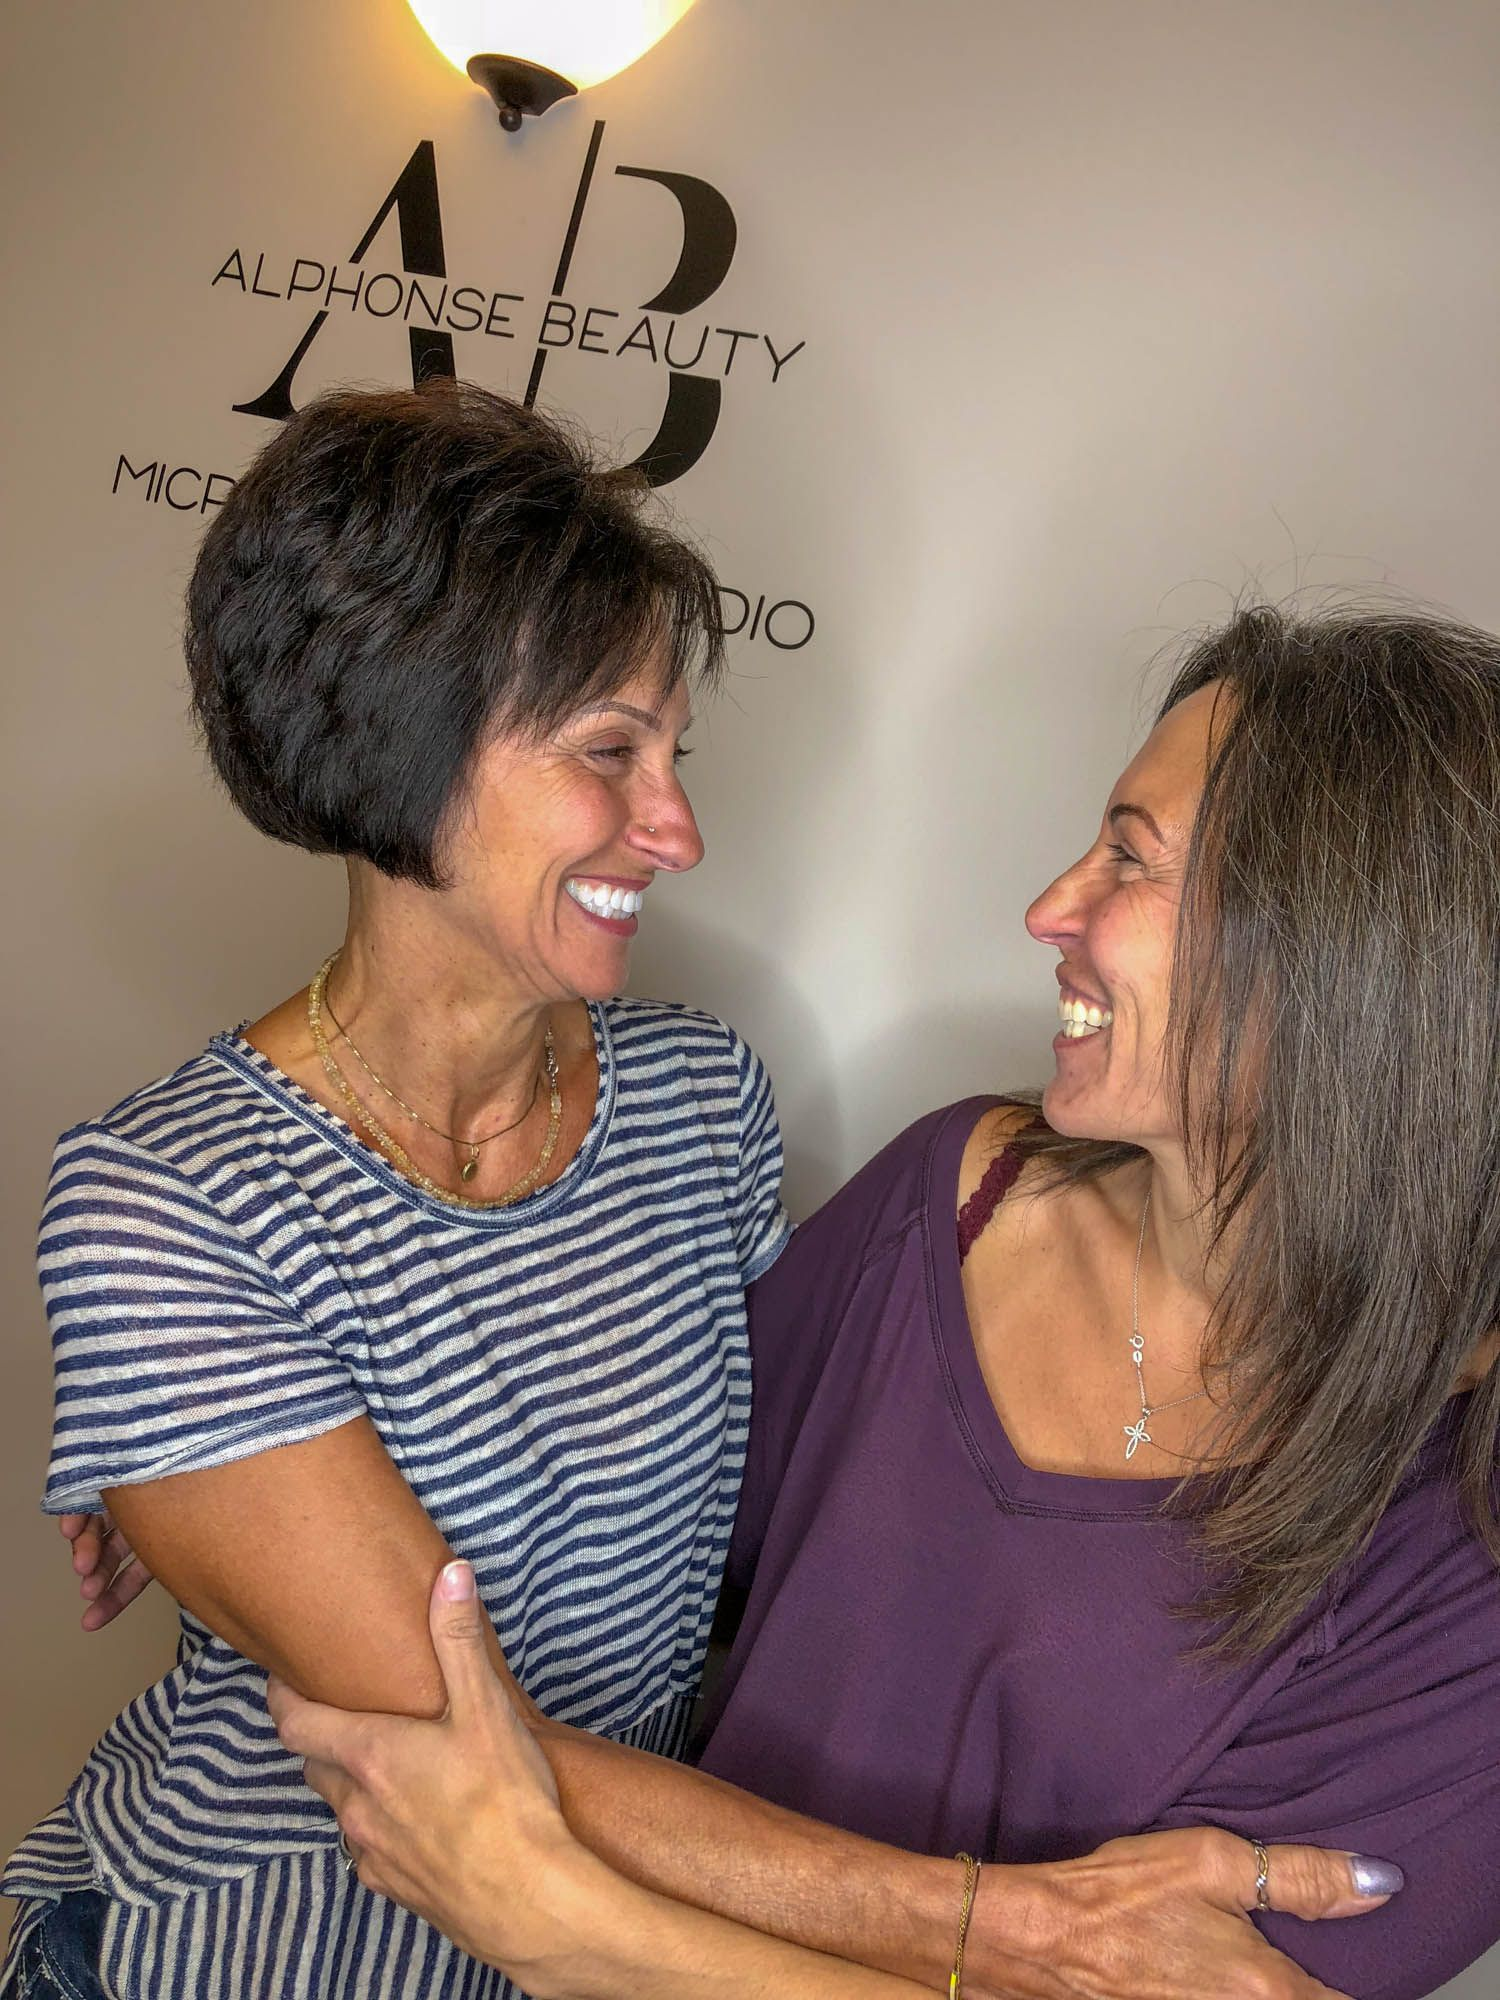 Sisters get microblading procedure done together at Alphonse Beauty